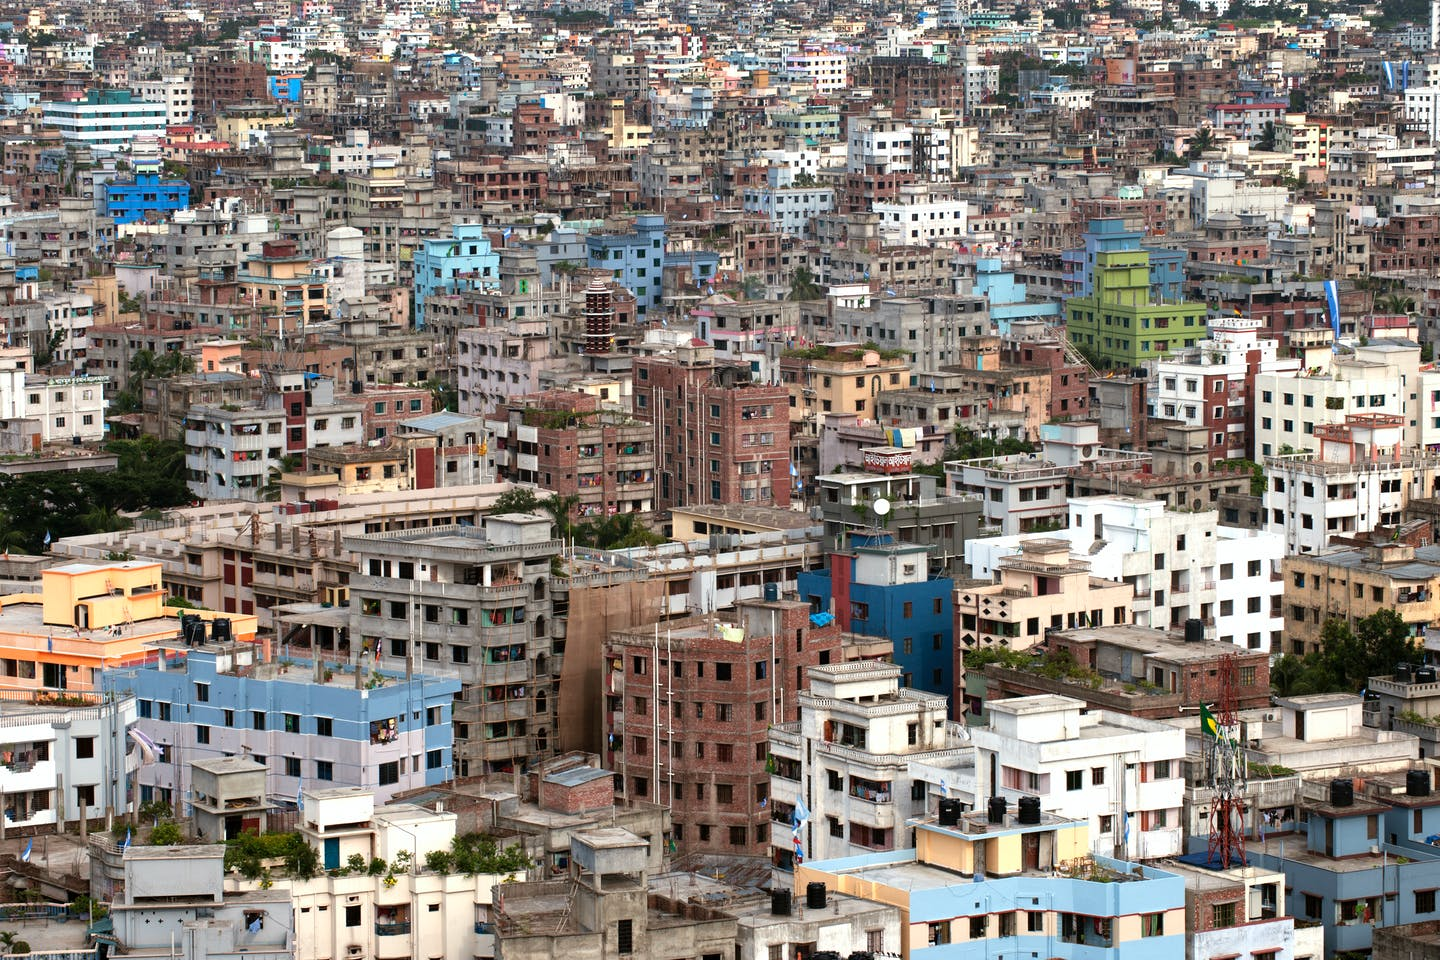 Buildings in Dhaka